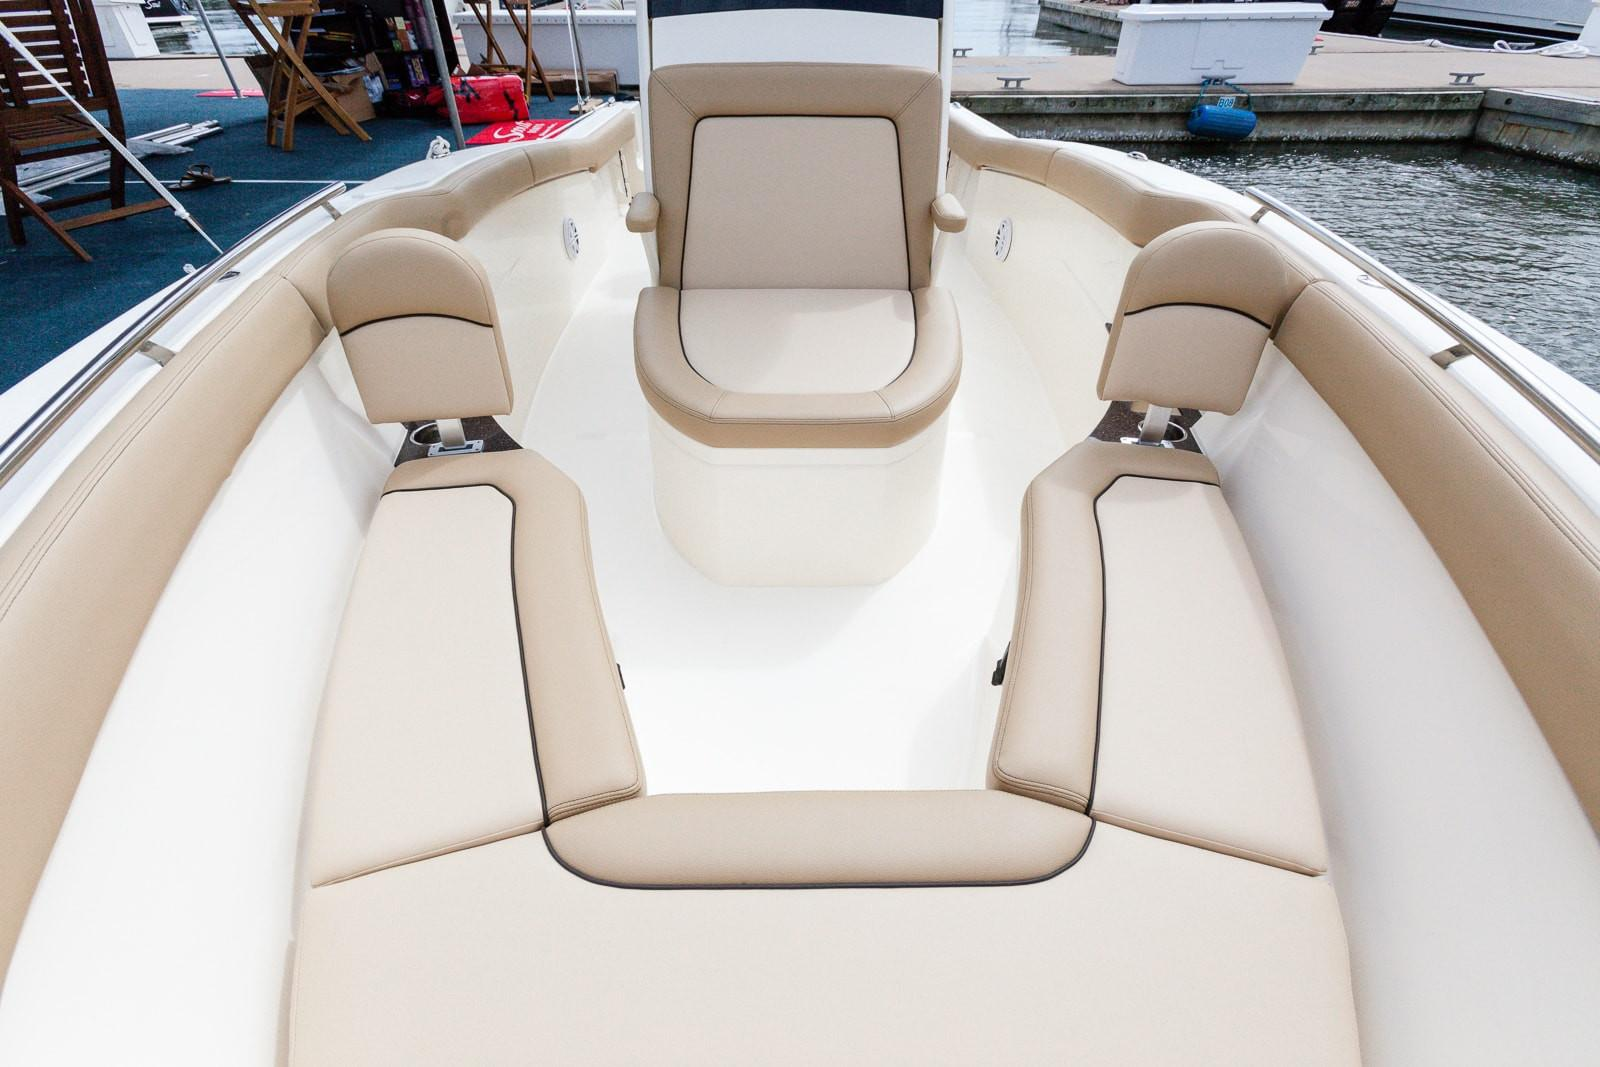 2019 Scout Boats 235 XSF in Bridgeport, New York